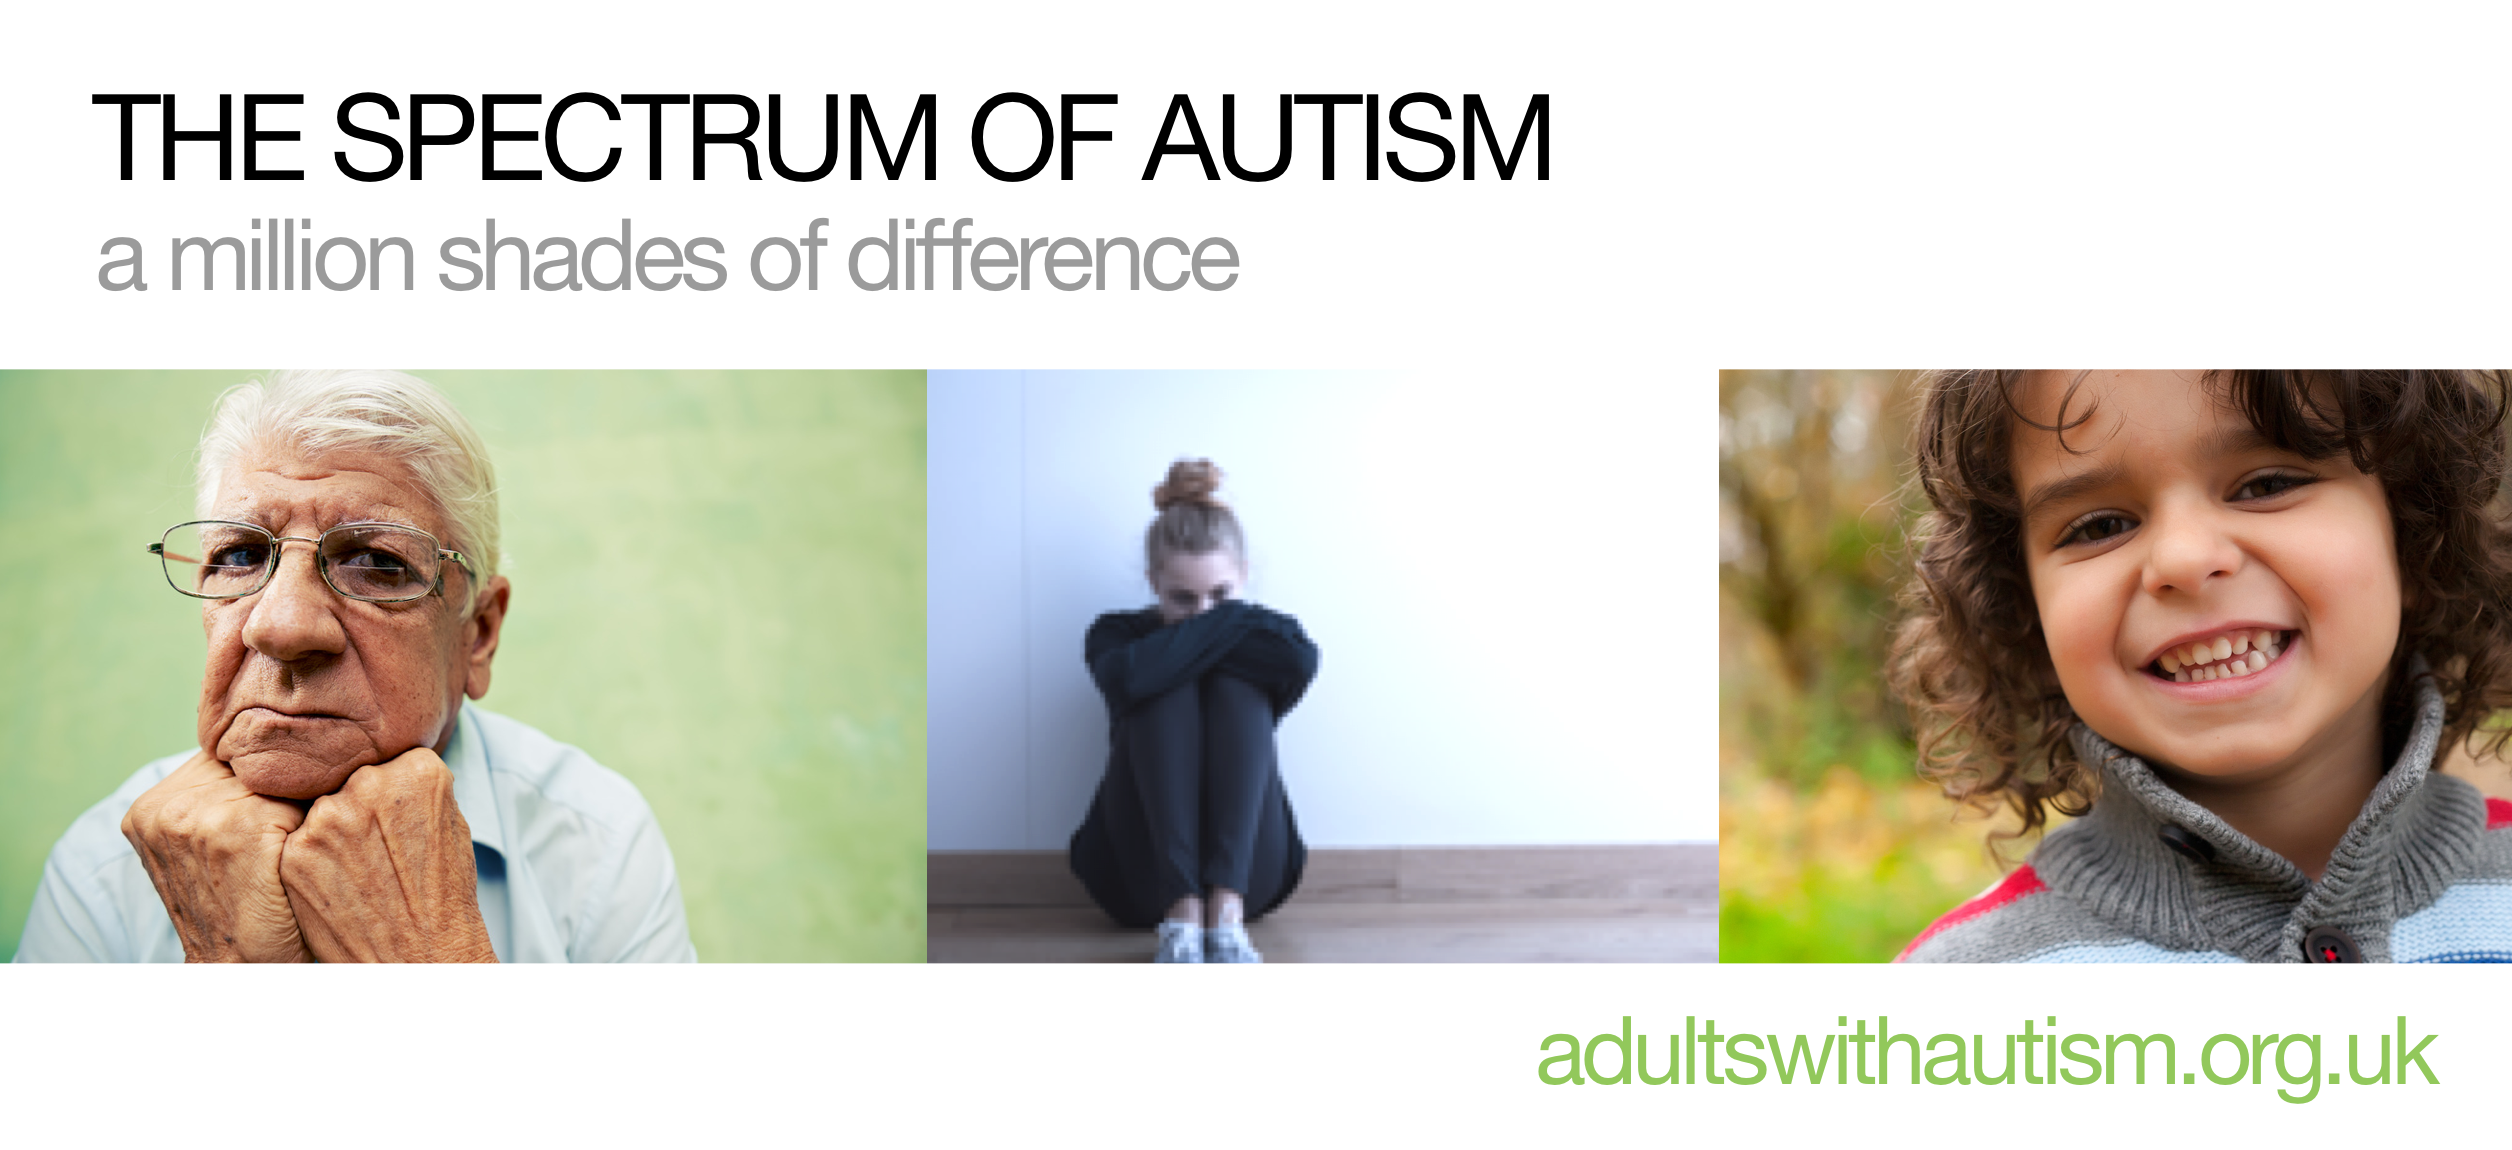 http://adultswithautism.org.uk/autism-mental-health-conditions-the-extra-cost-of-insurance/